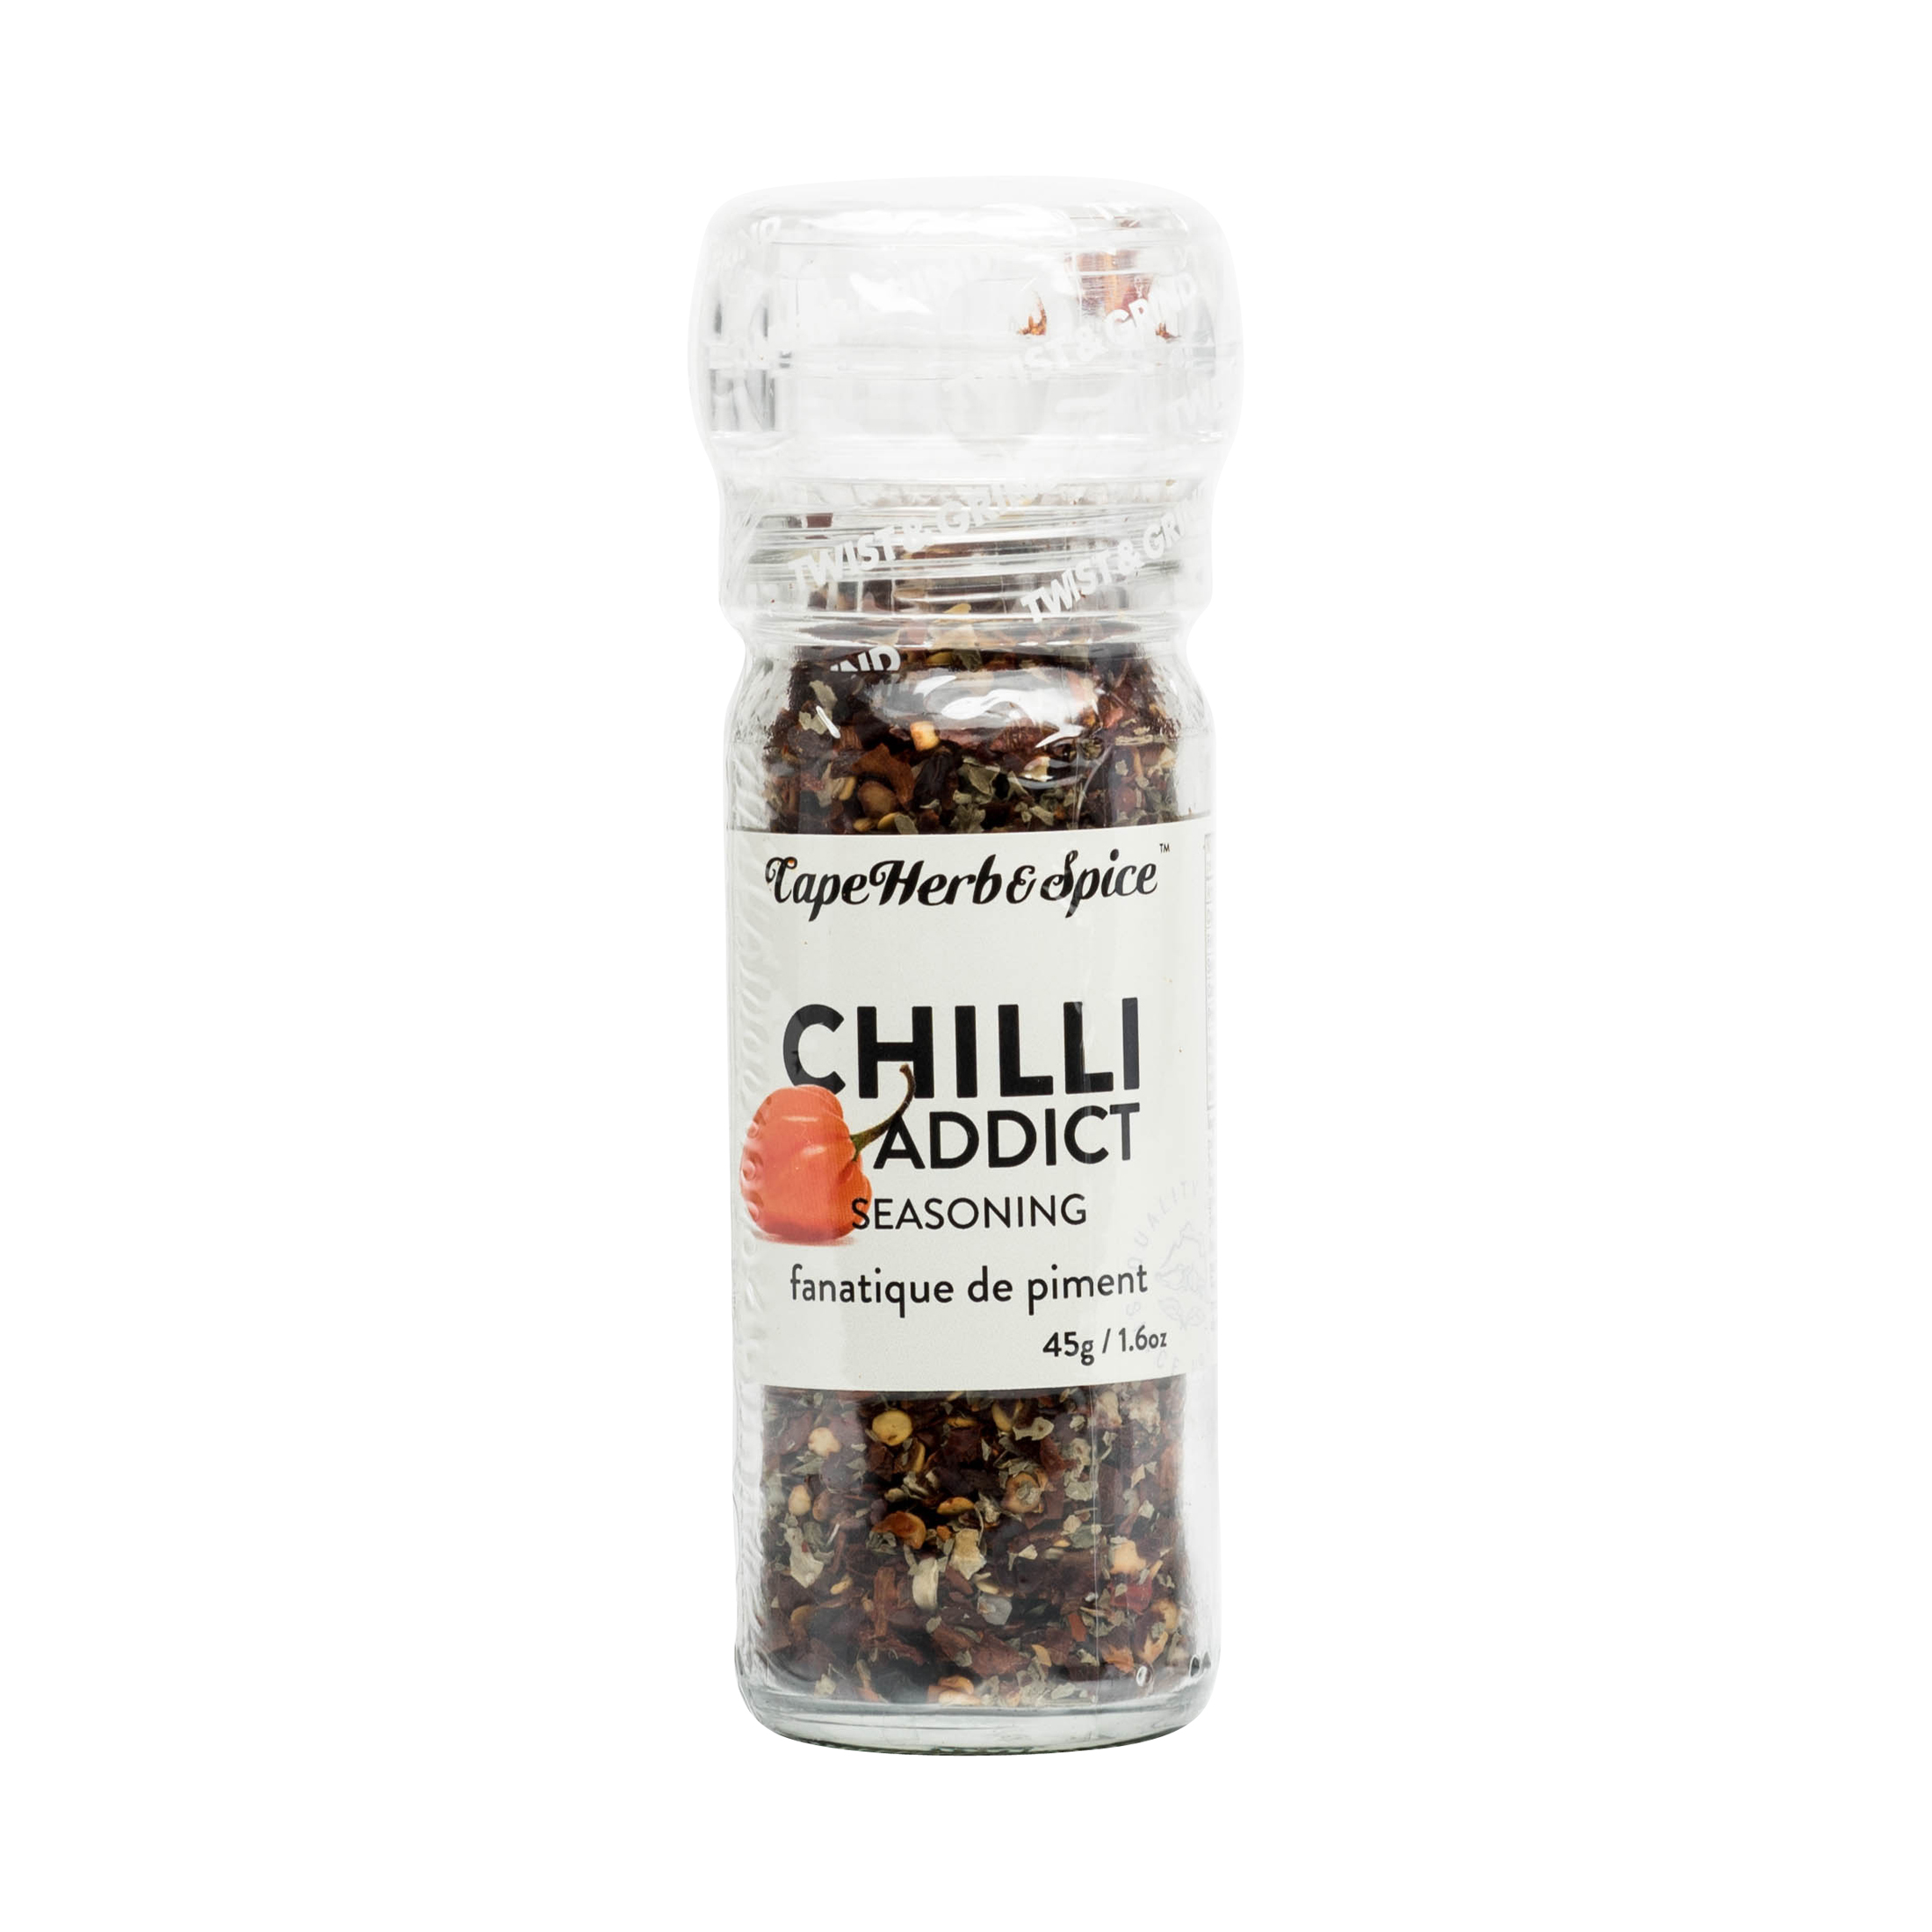 CHILLI ADDICT SEASONING GRINDER